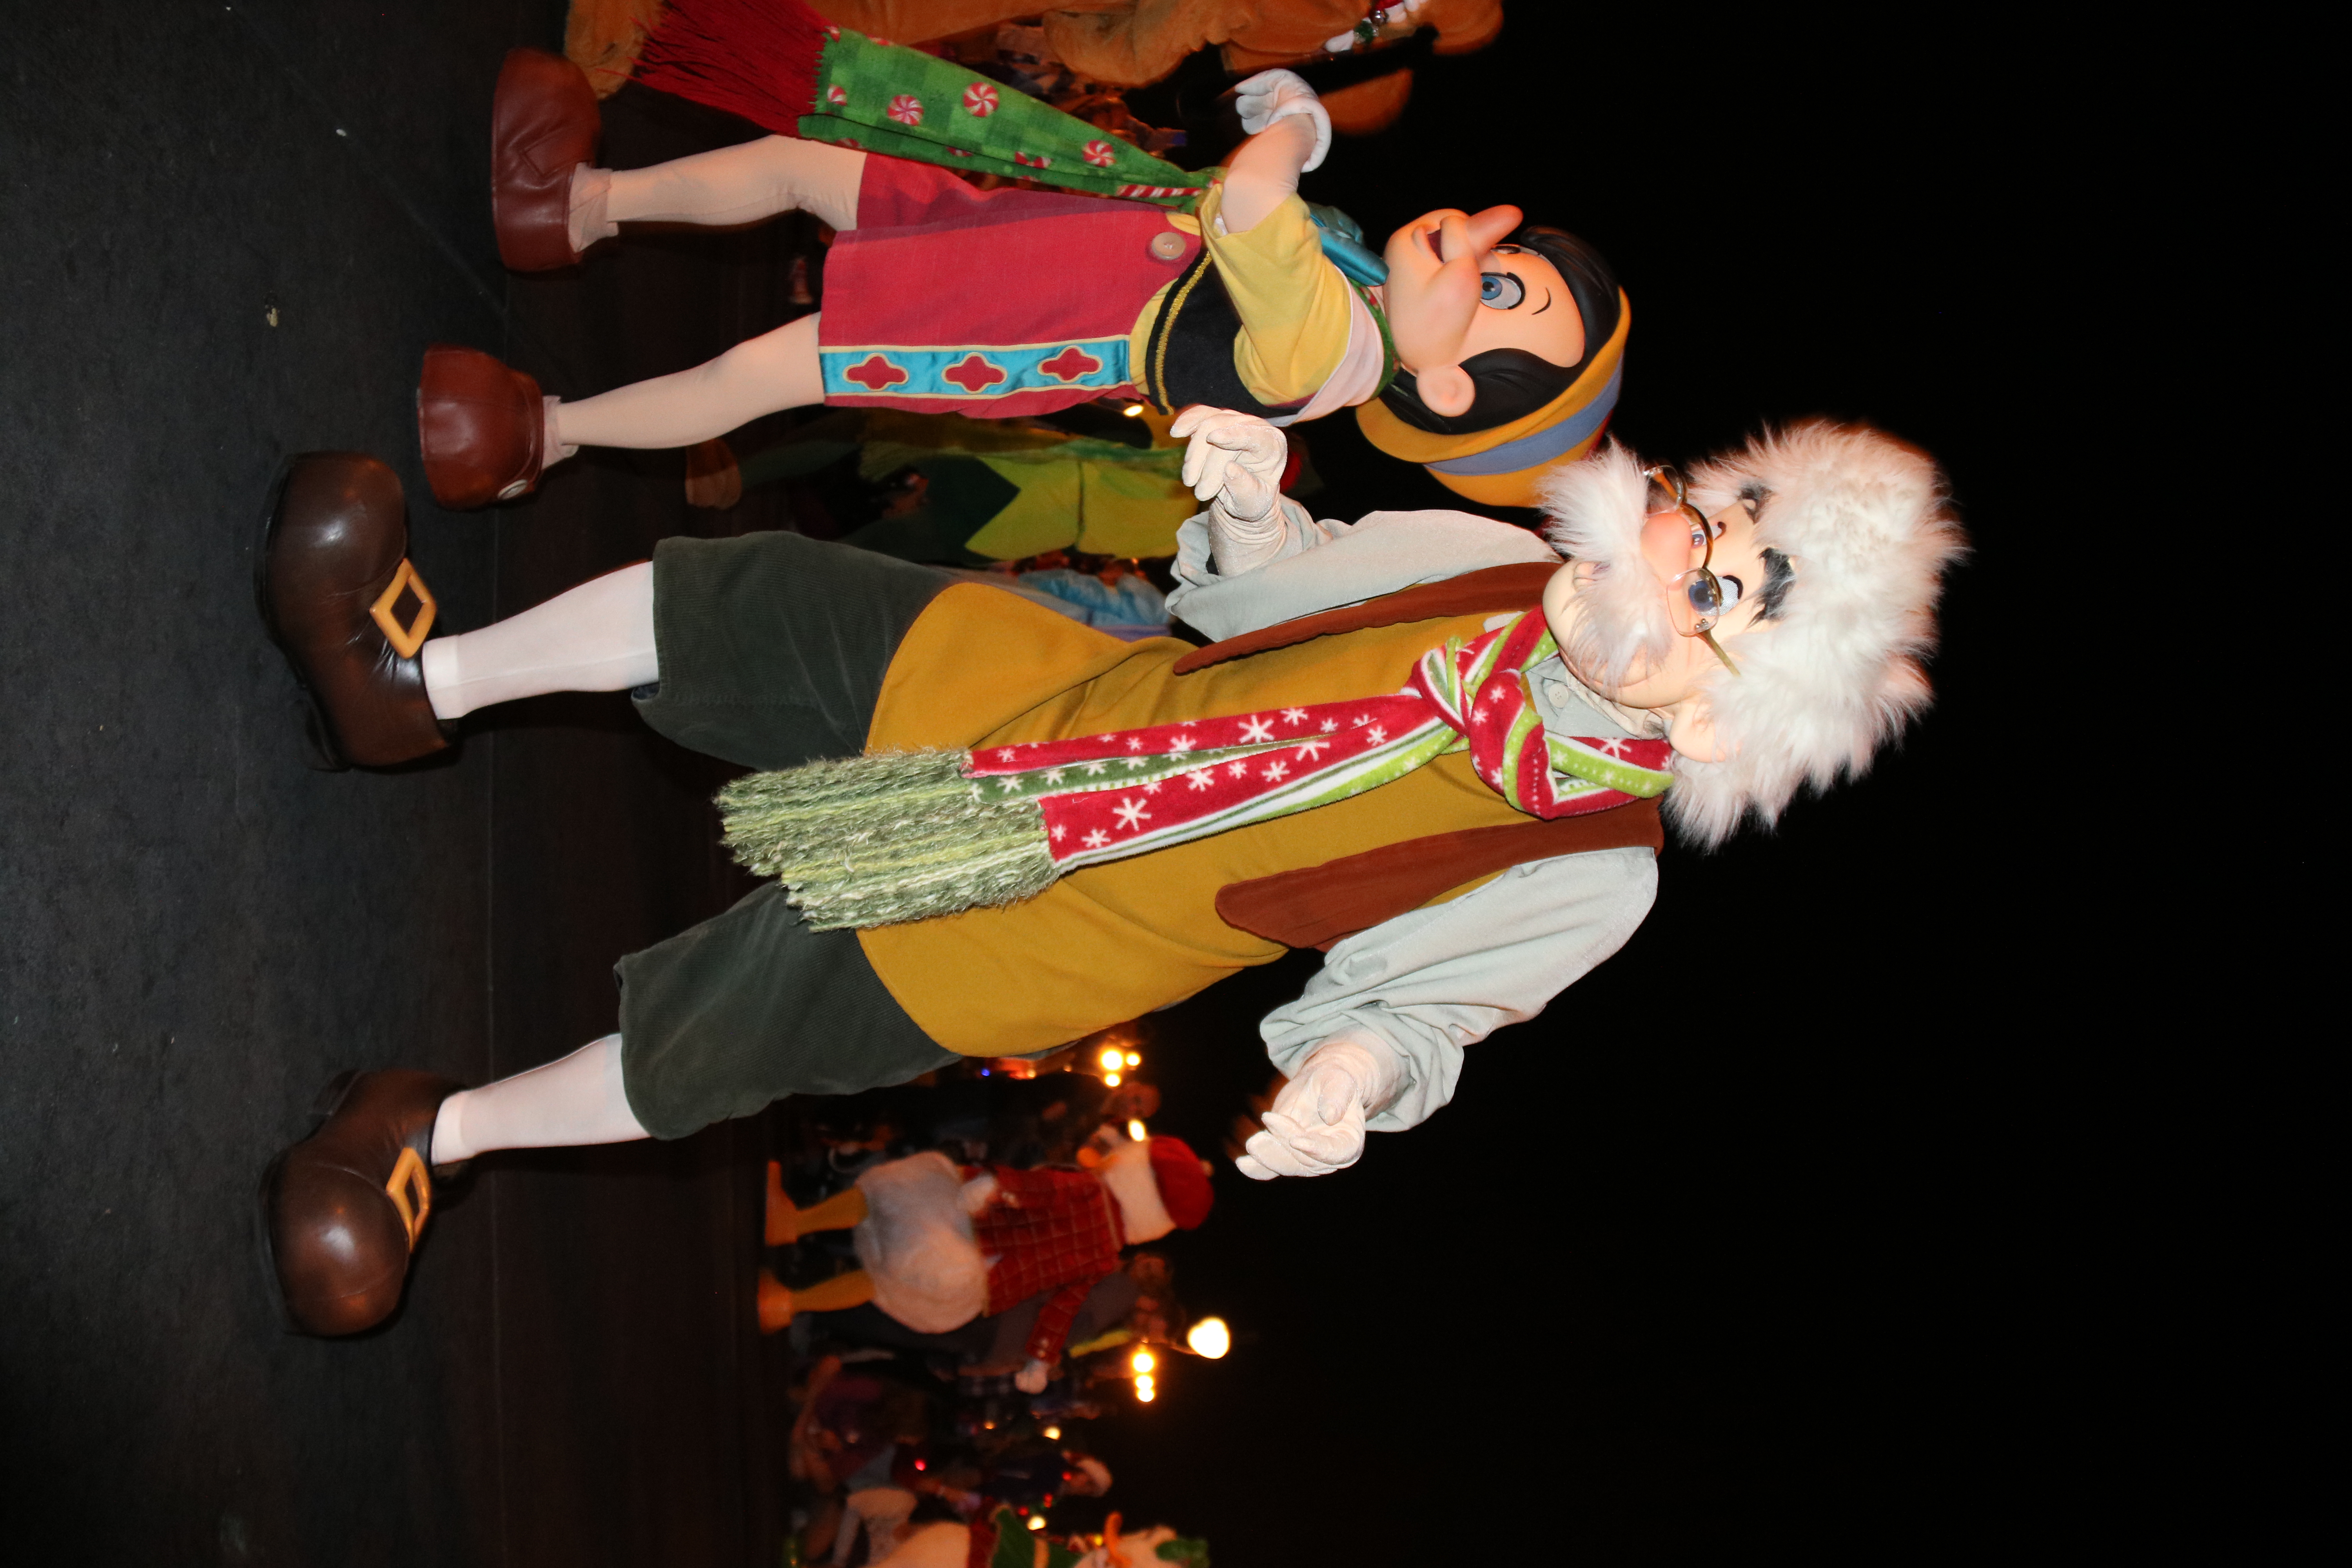 Old Geppetto